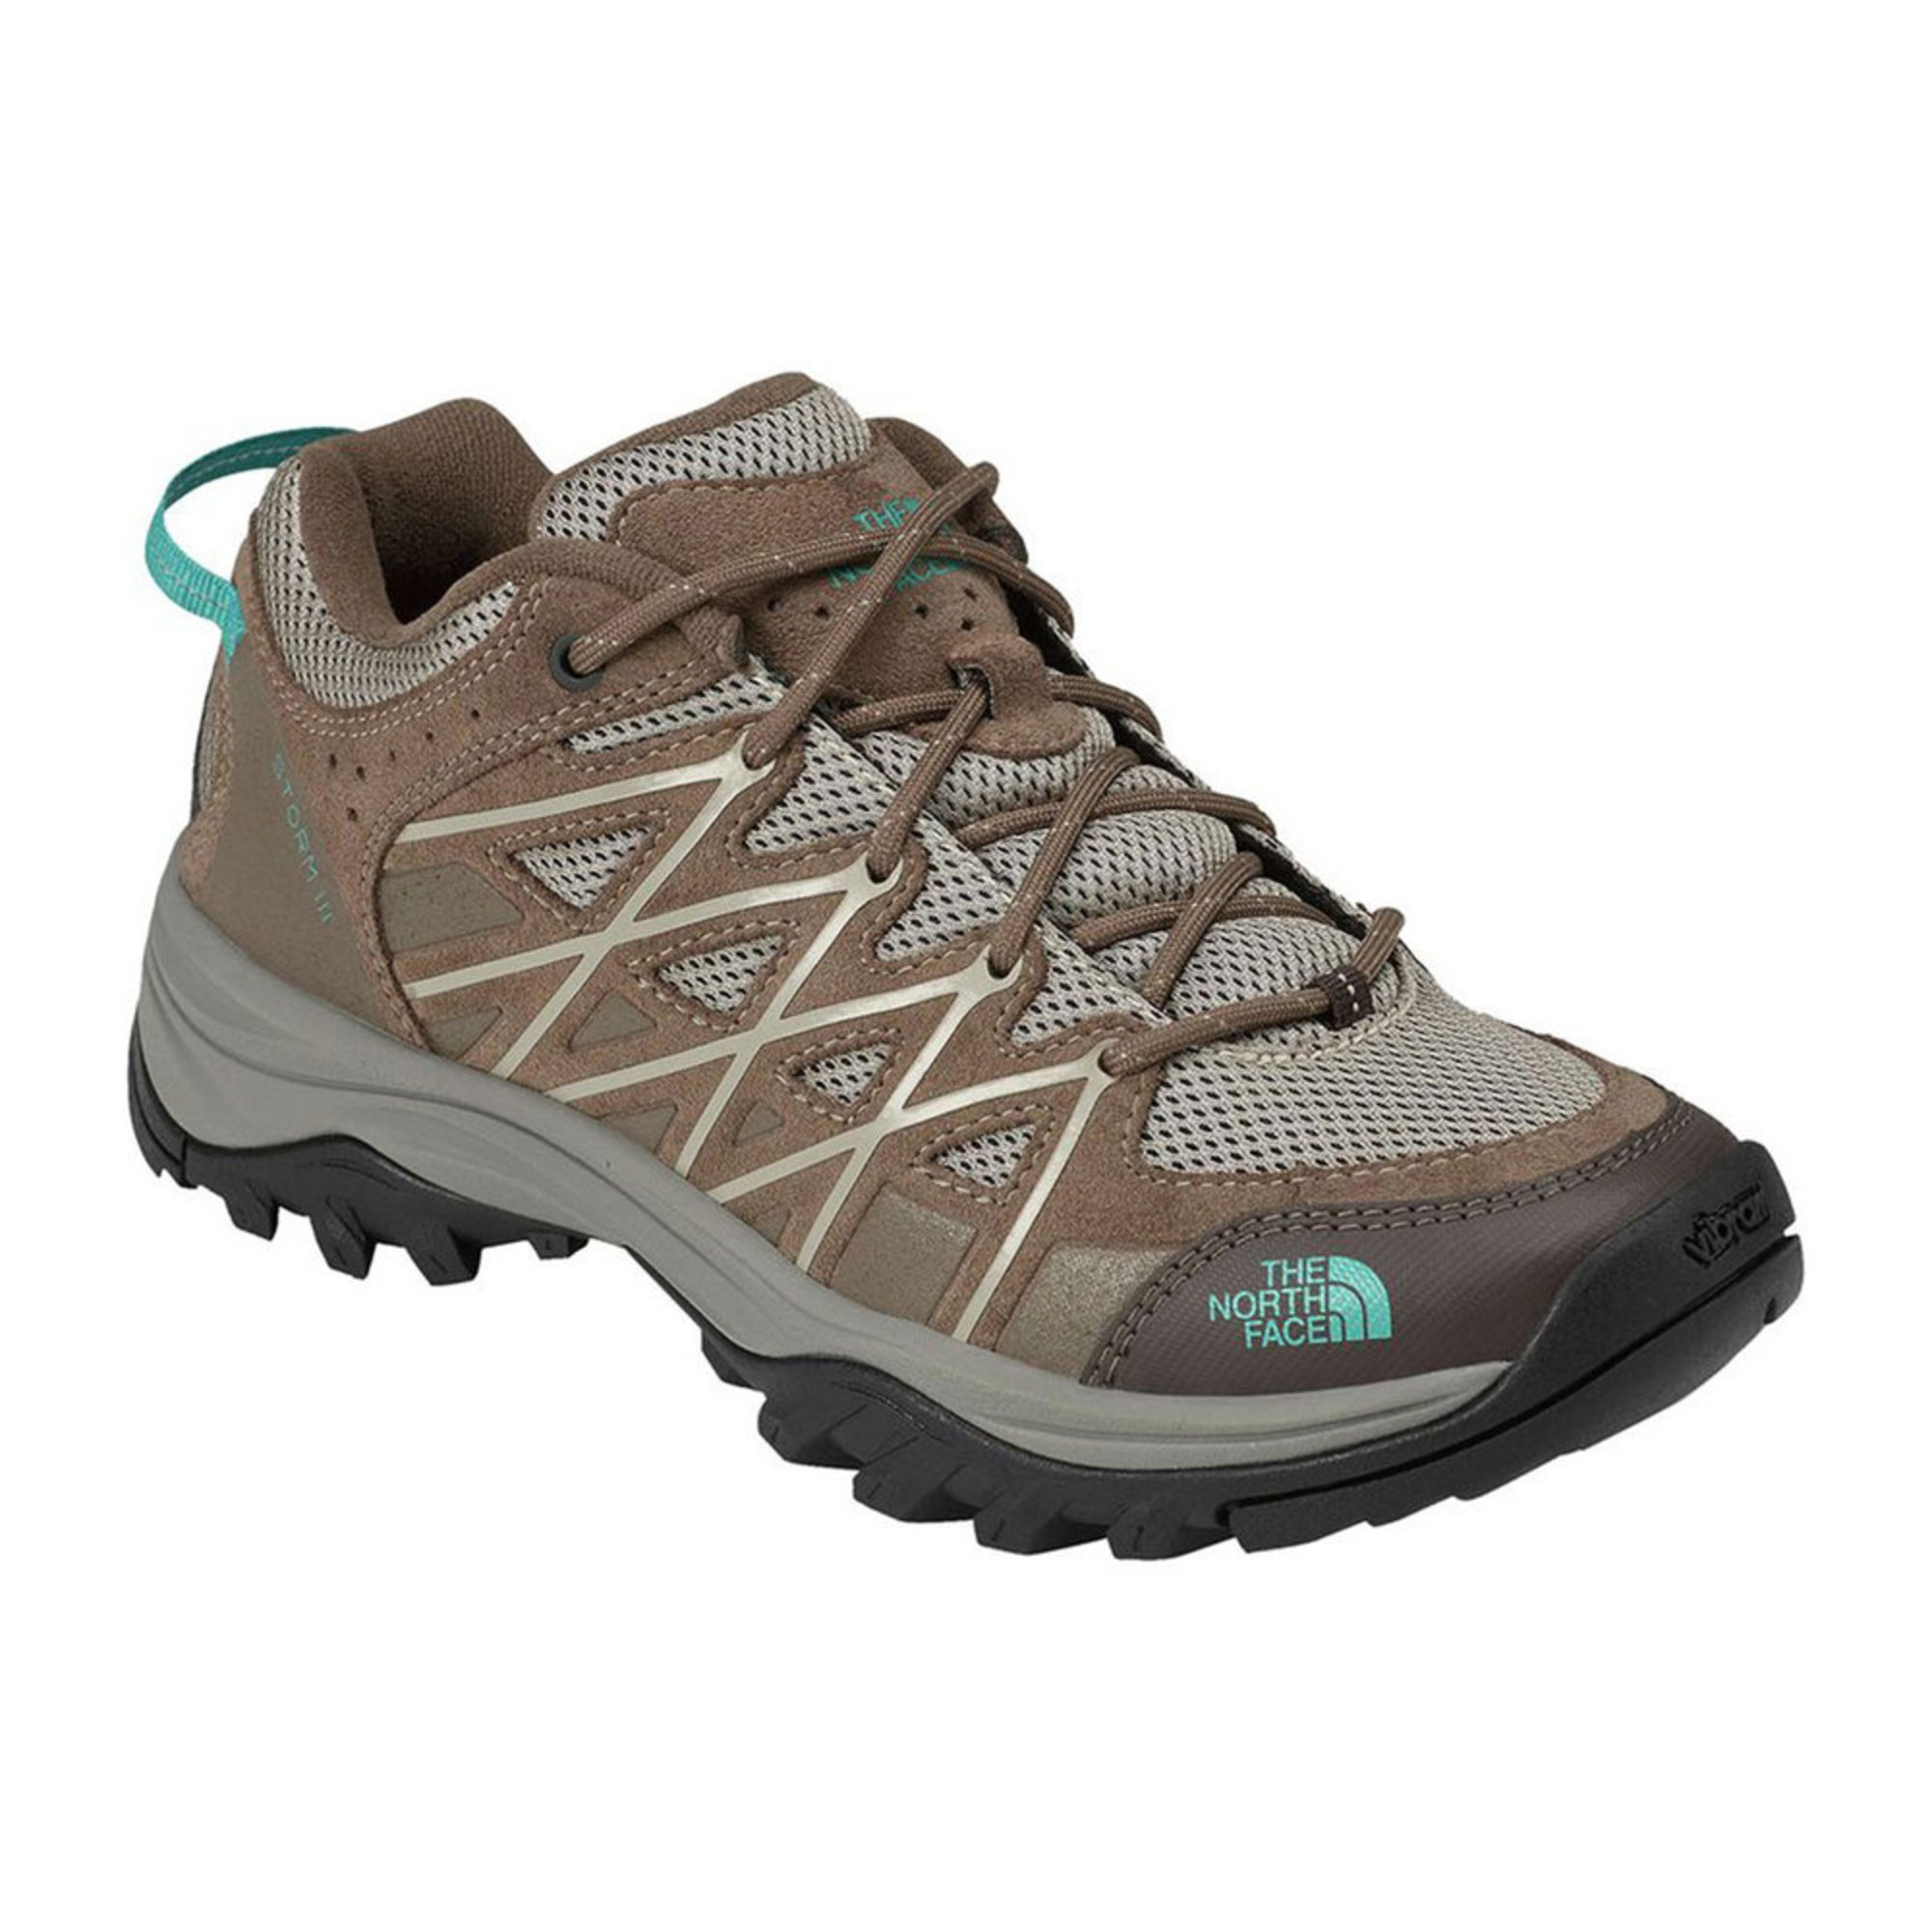 8b406fc92 The North Face Women's Storm III Mid Waterproof Hiking Boot